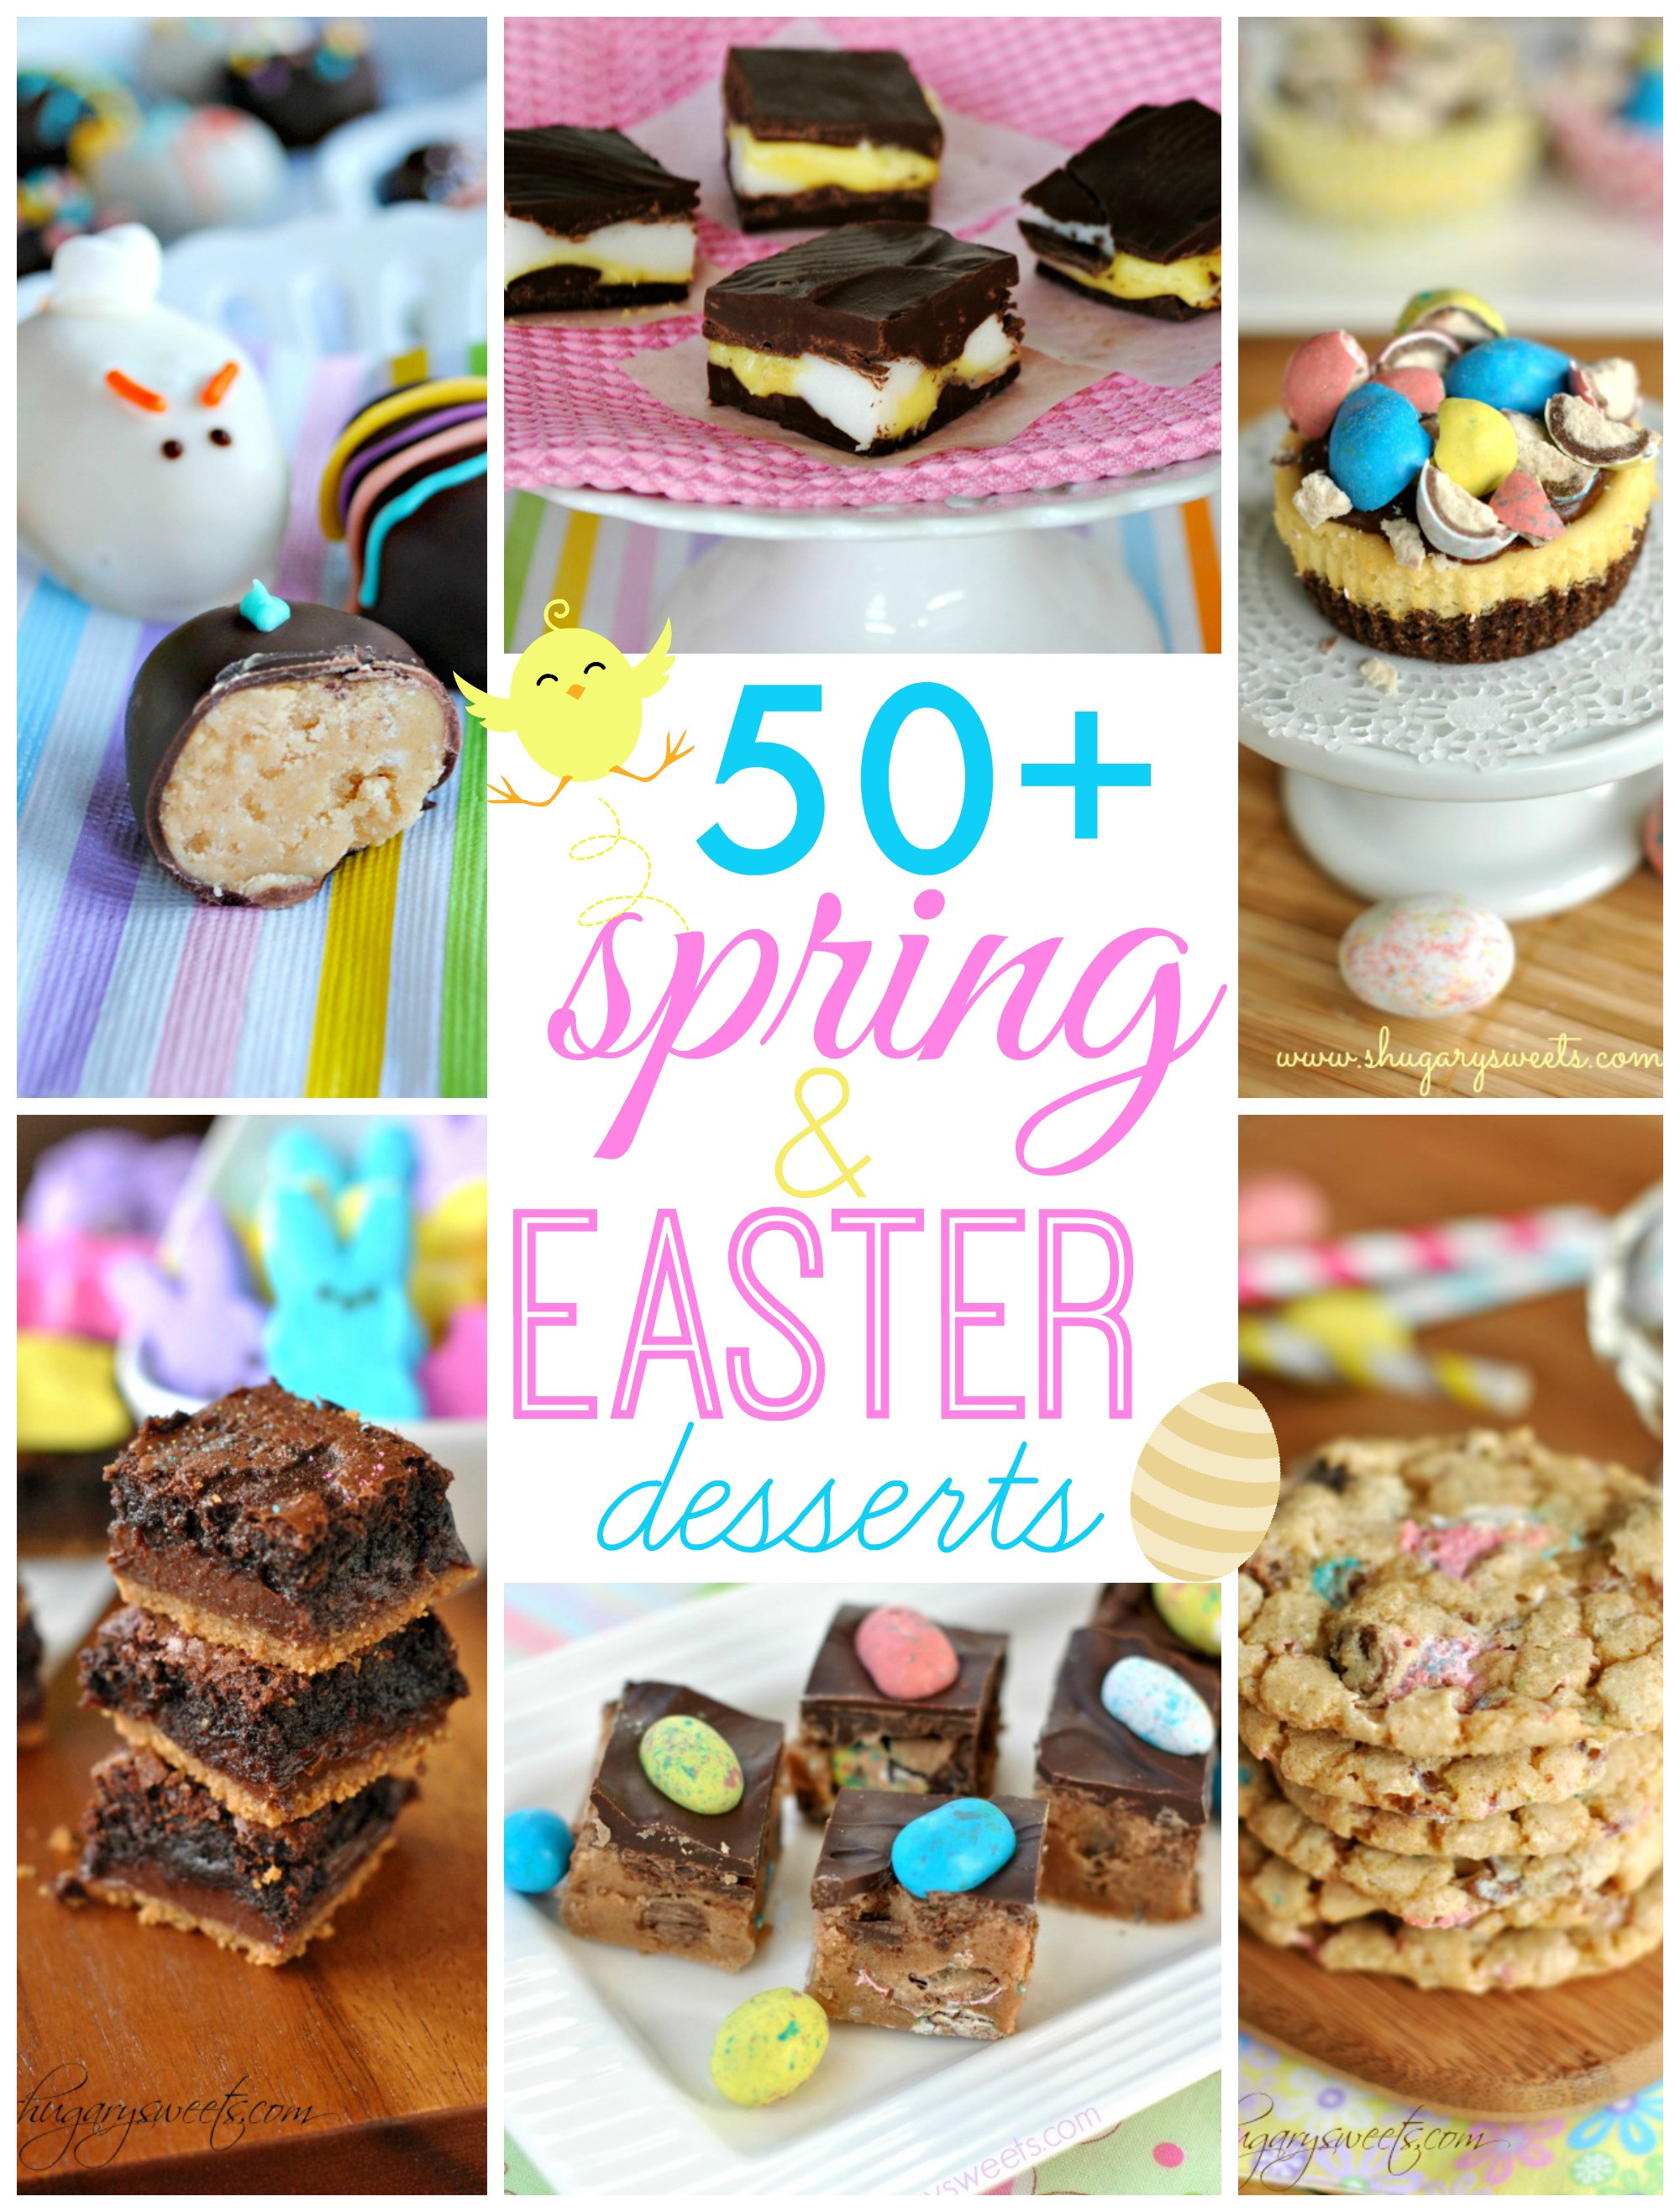 Desserts Recipes For Easter  50 Easter Desserts Shugary Sweets